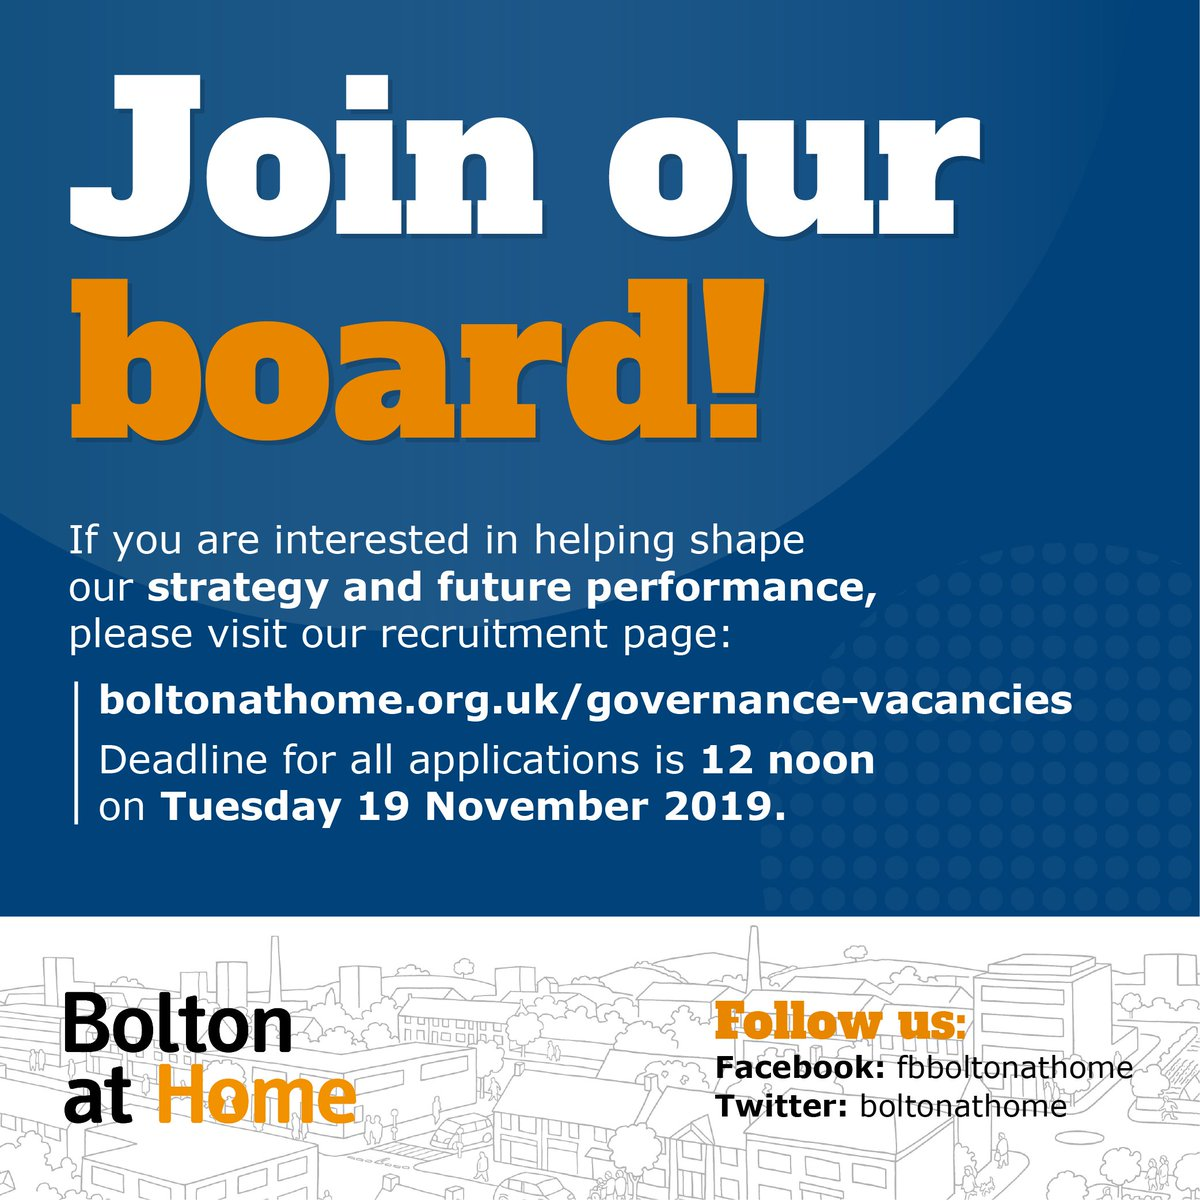 Bolton at Home Group have two Non-Executive Director vacancies! ➡️ If you are interested in helping shape our strategy and future performance, please visit our recruitment page: boltonathome.org.uk/governance-vac… ⌚ The deadline for all applications is 12 noon on Tuesday 19 November 2019.